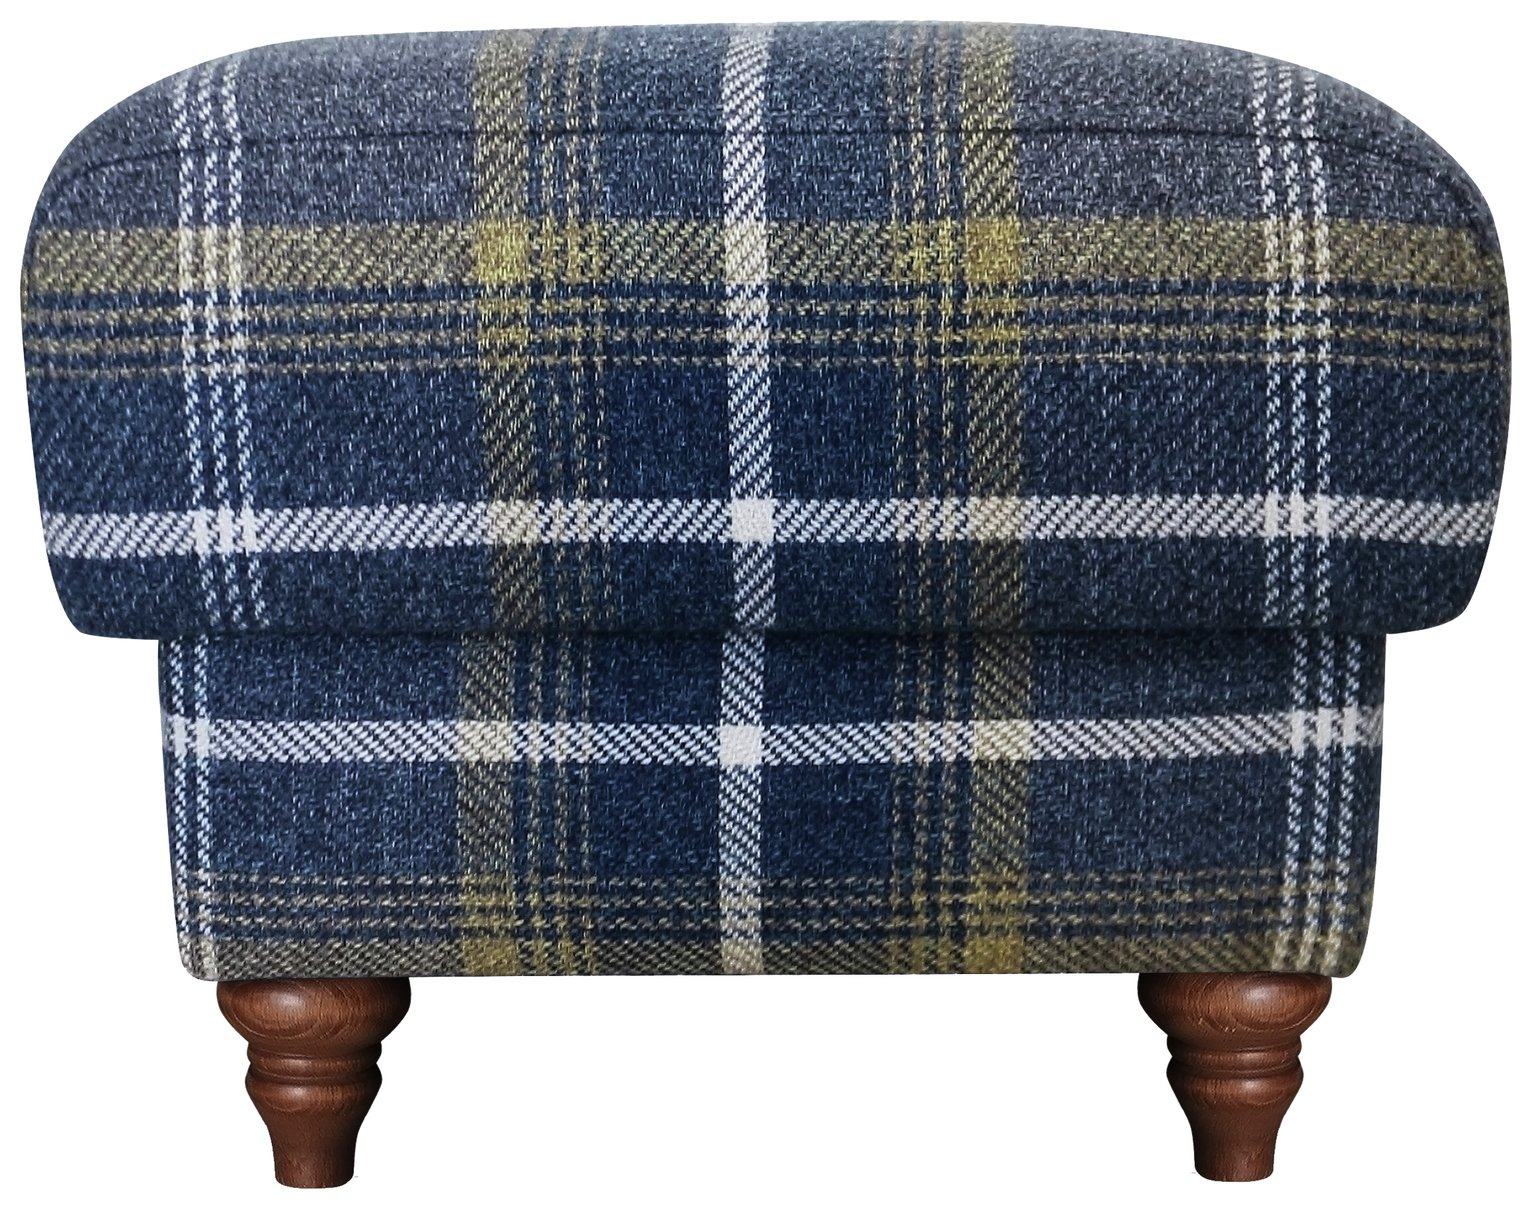 Argos Home Argyll Fabric Storage Footstool - Blue & Yellow